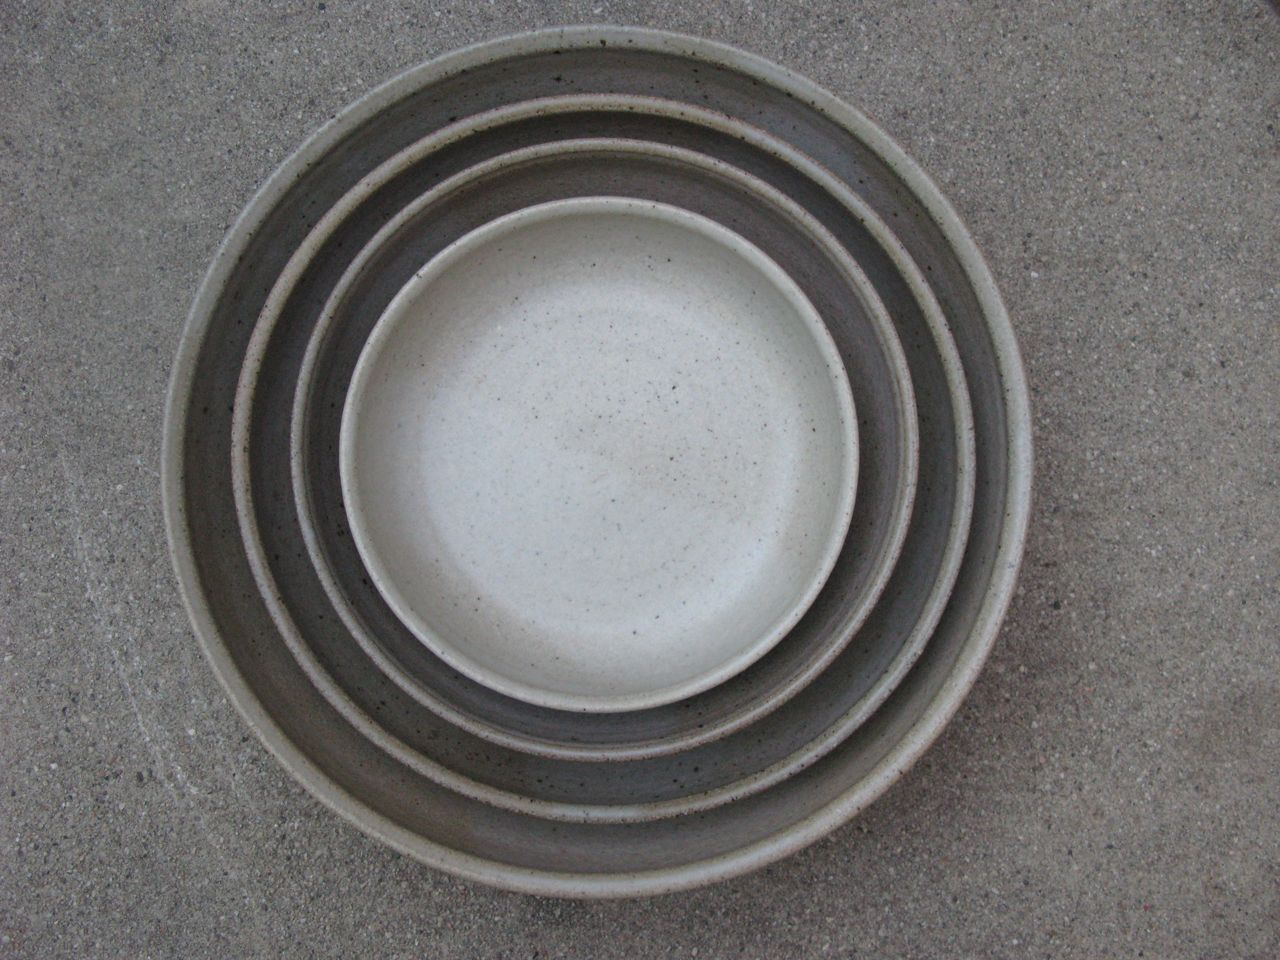 Nested set of bowls